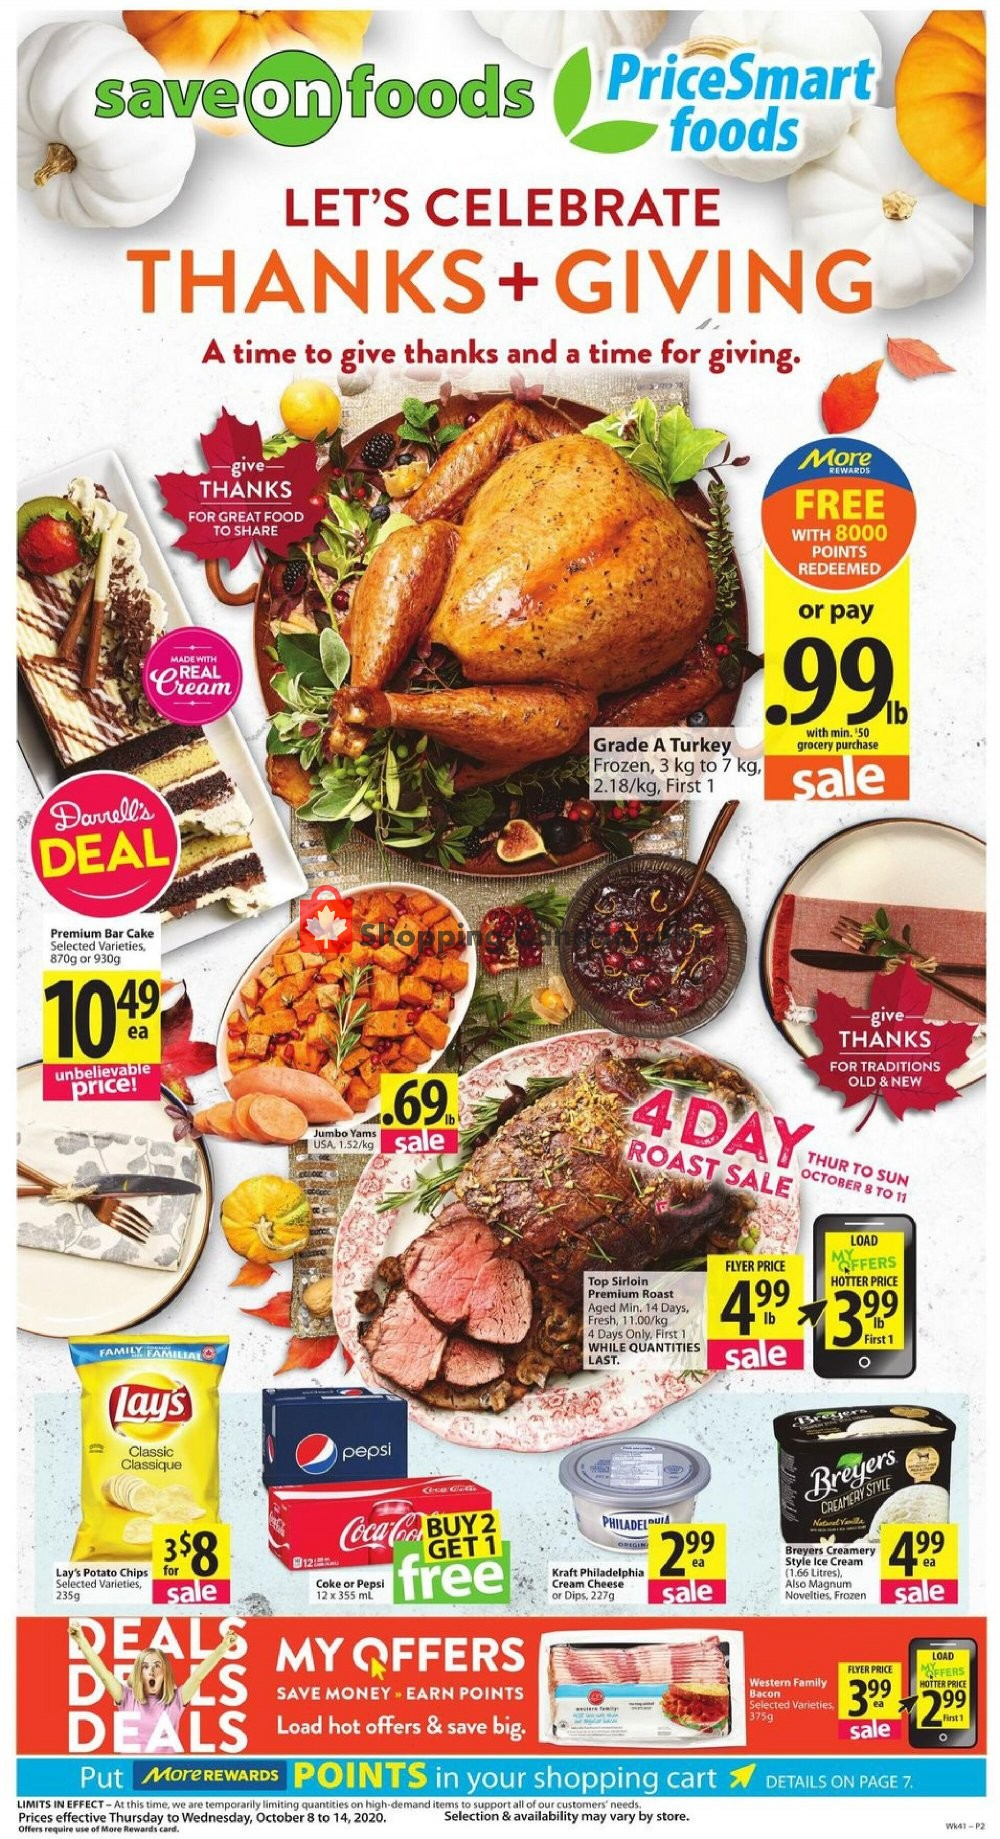 Flyer PriceSmart Foods Canada - from Thursday October 8, 2020 to Wednesday October 14, 2020